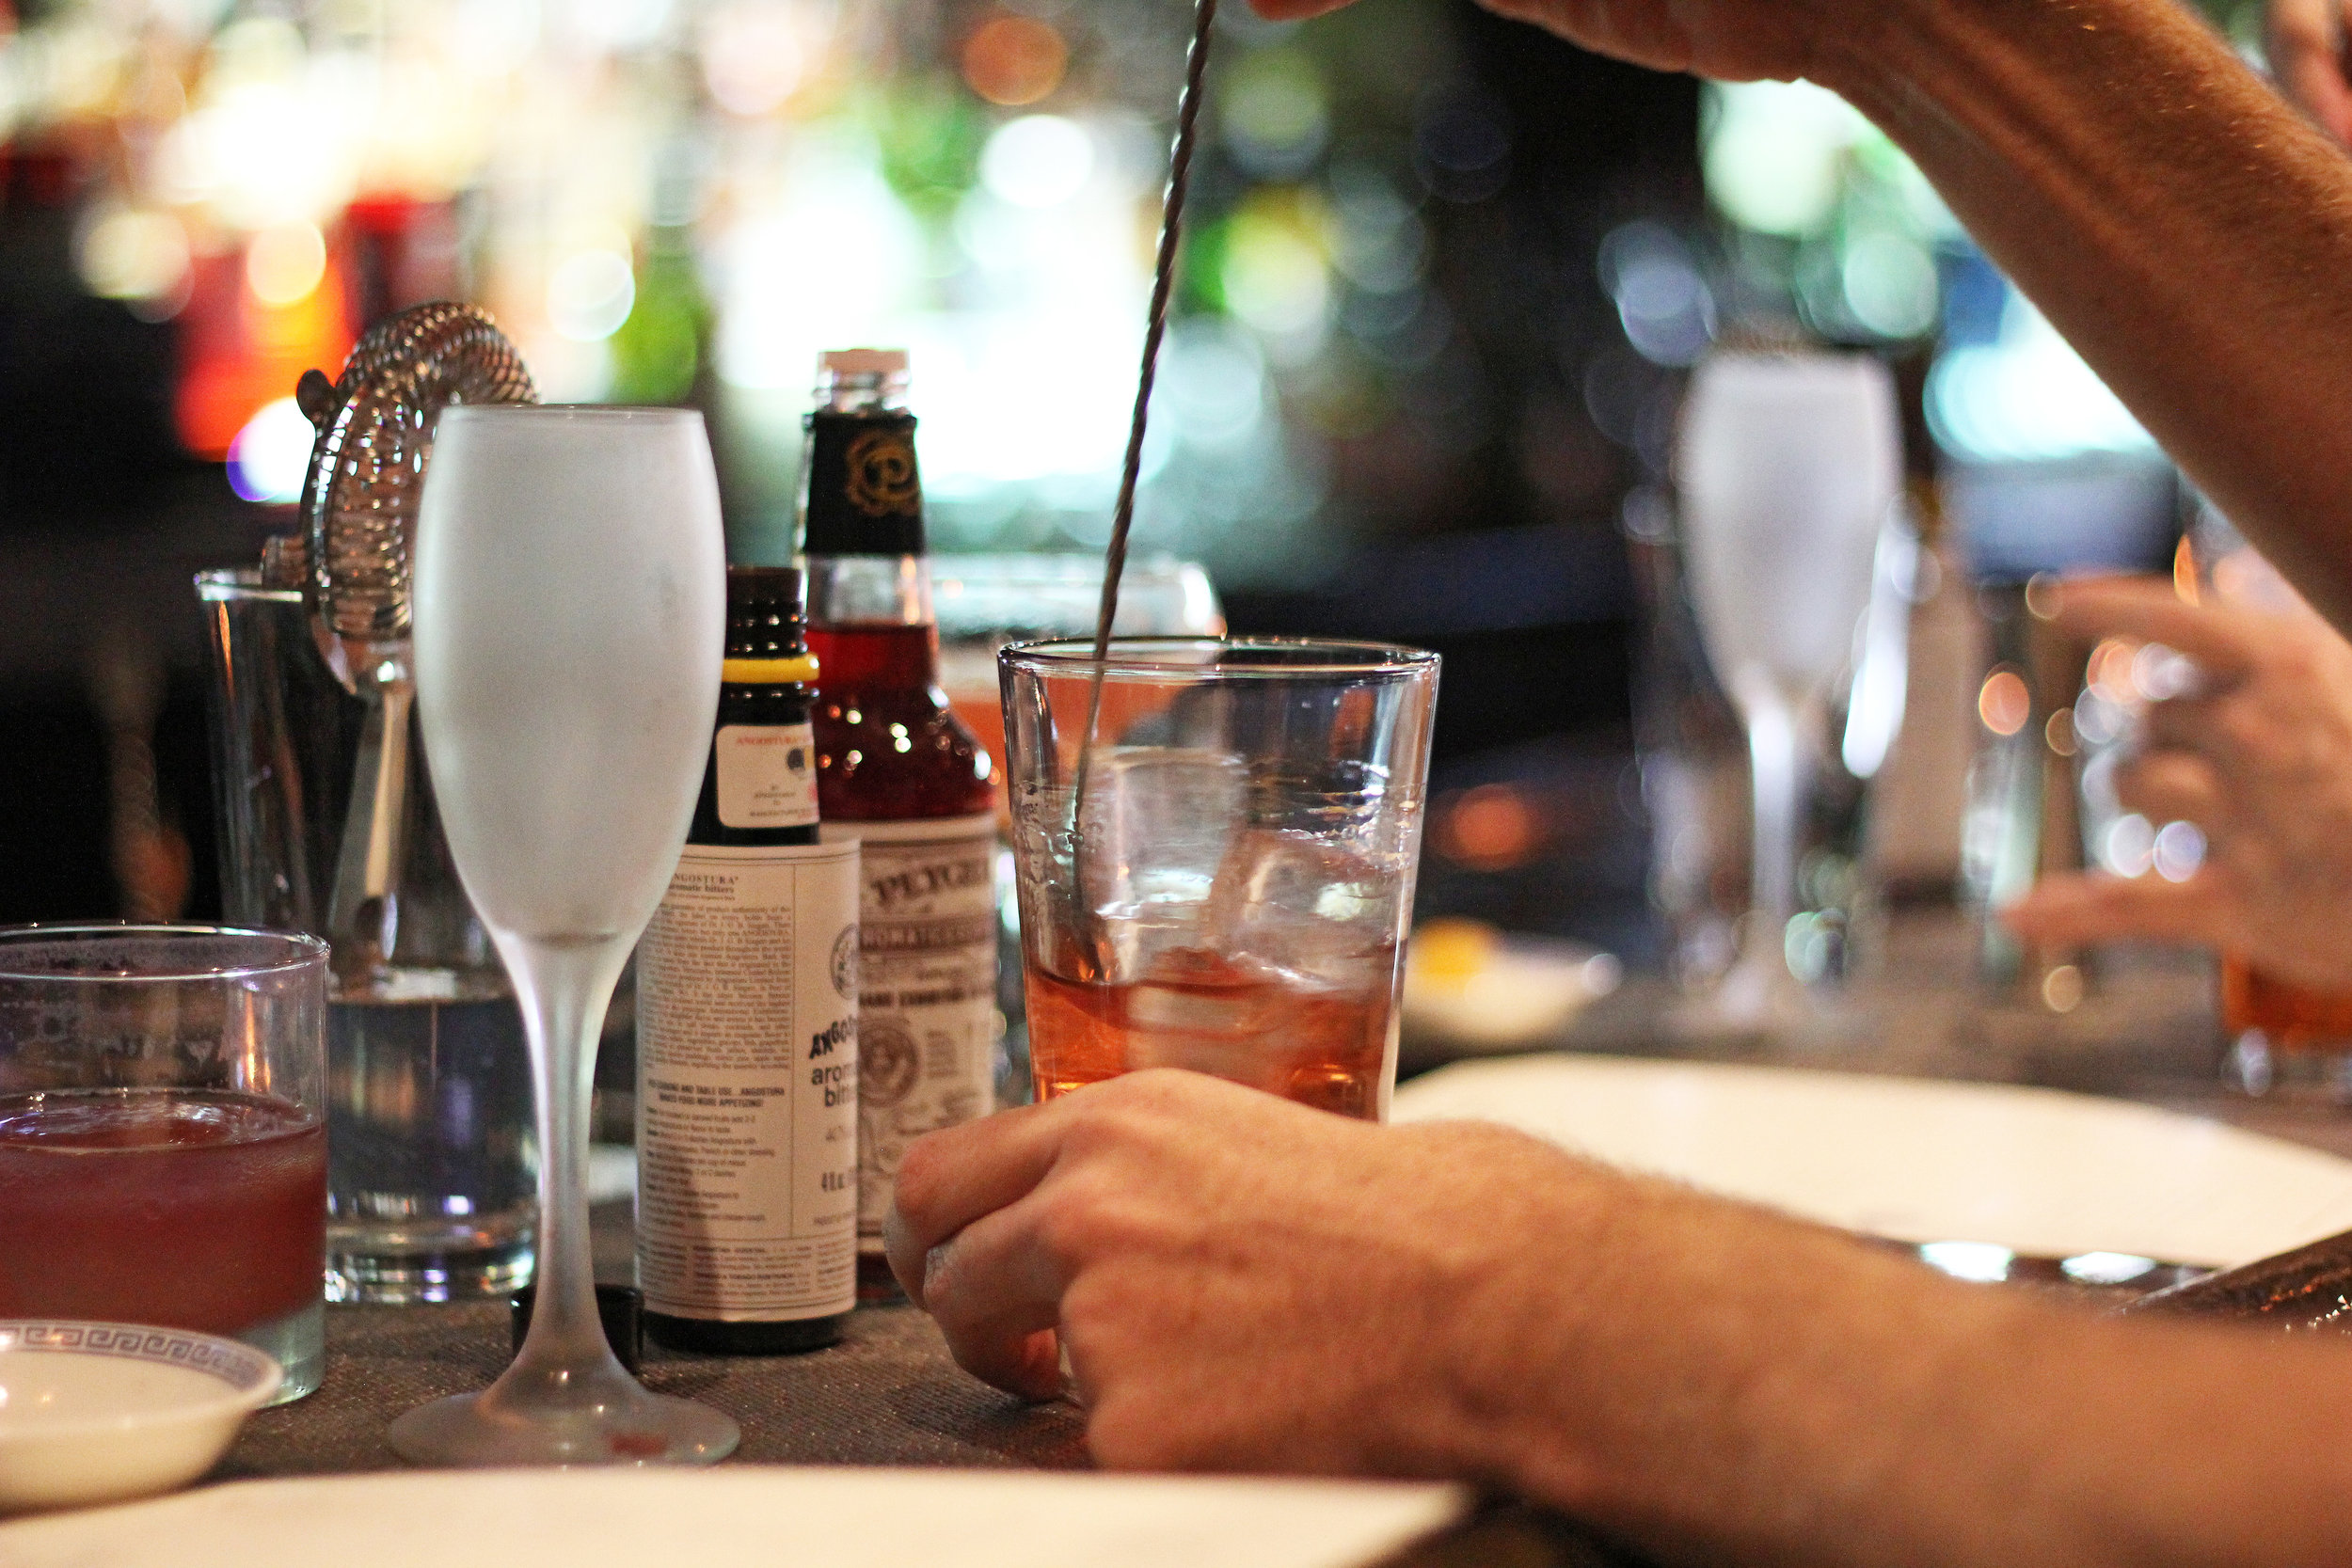 It's all rye with me. - How did the New York Sour get its name? What is the difference between bourbon and rye, and are both considered whiskey? And what the heck is a jigger?